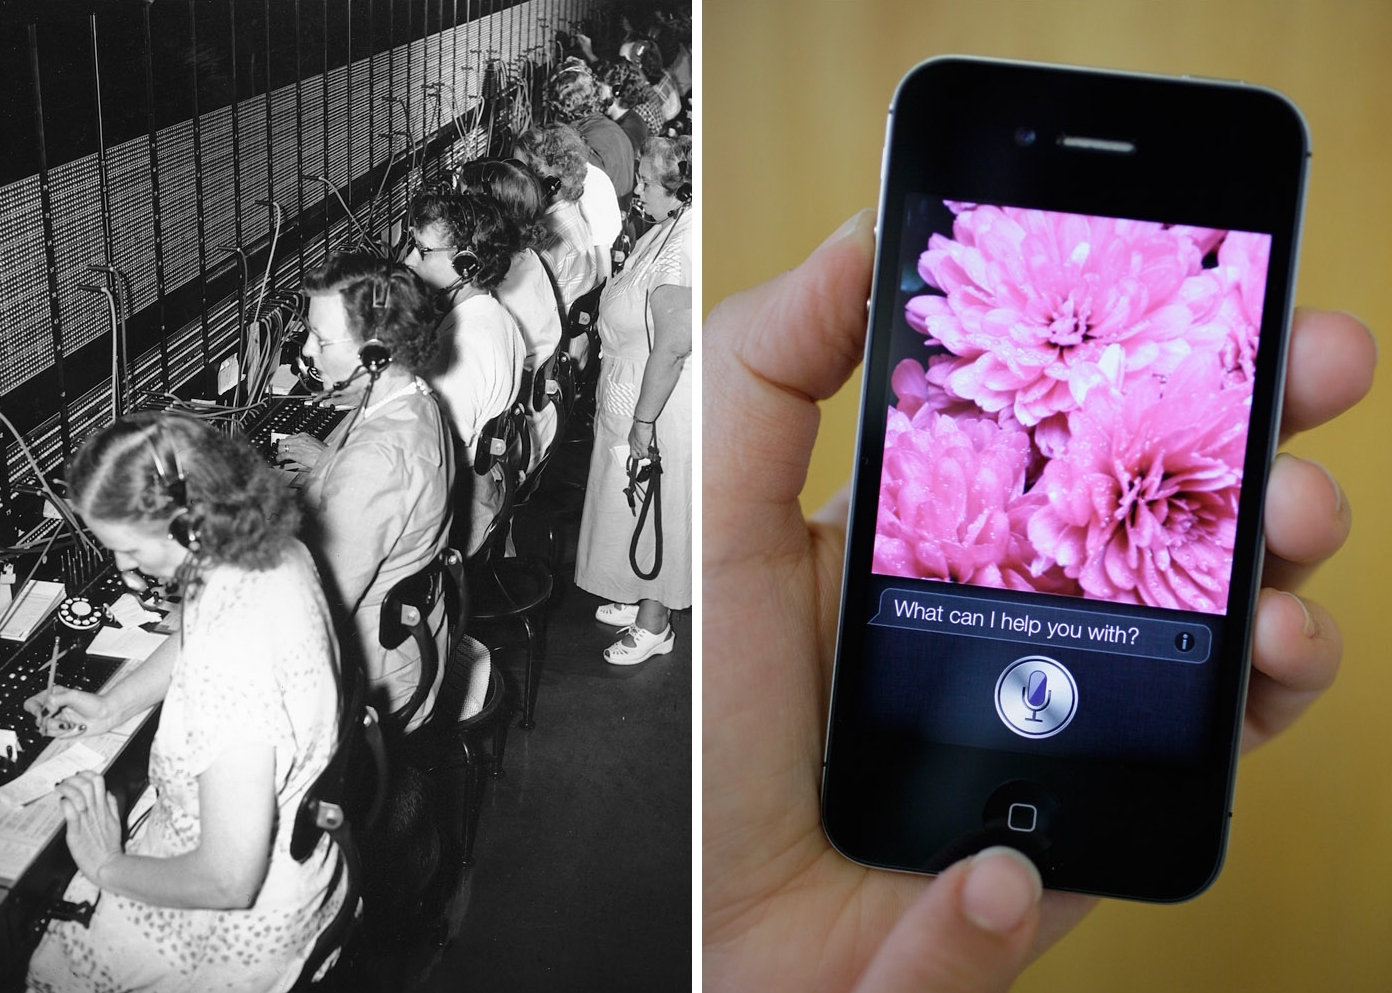 Picture of telephone operators and Siri iPhone